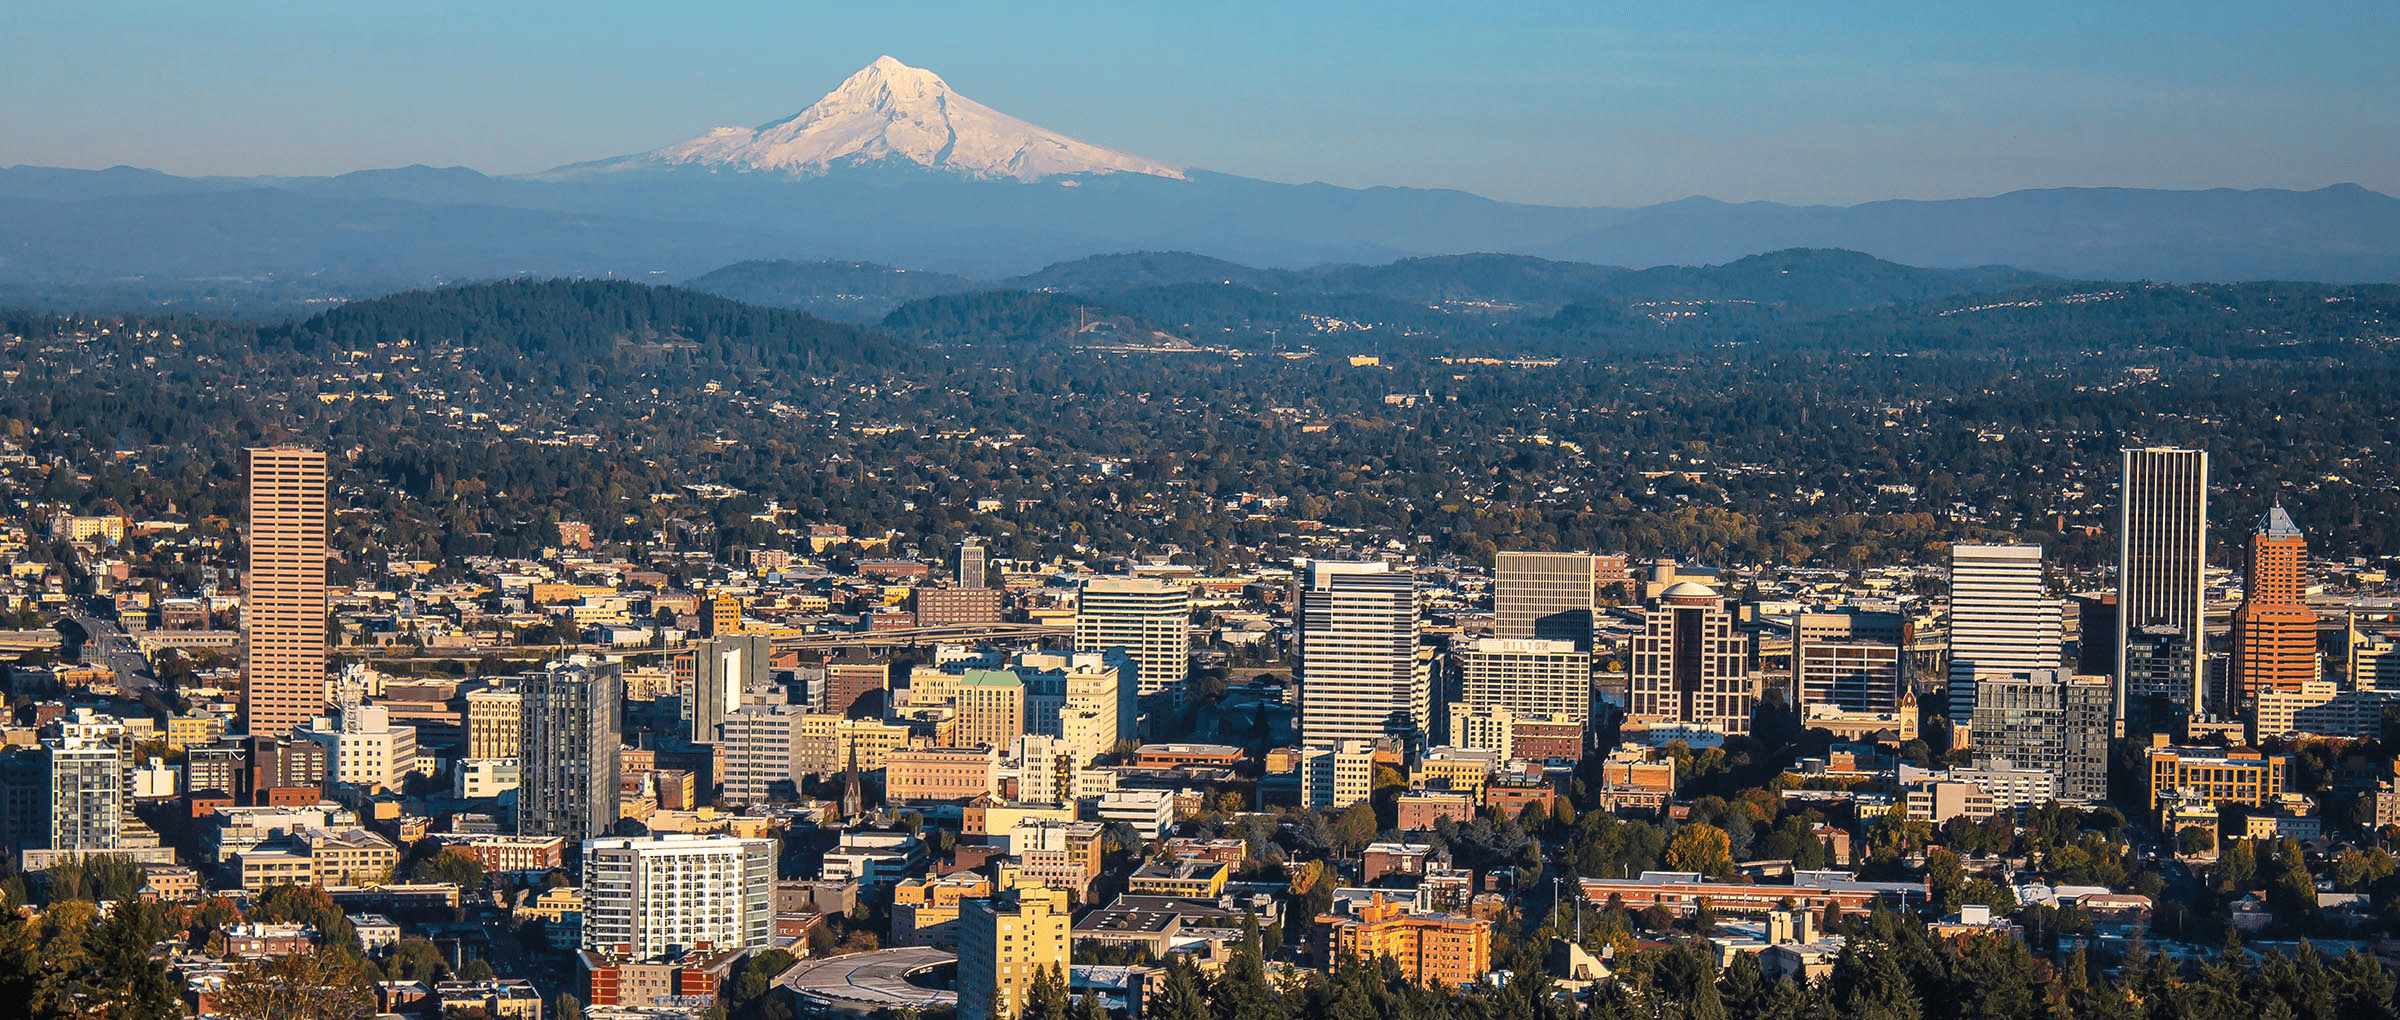 Aerial views of Portland, Oregon